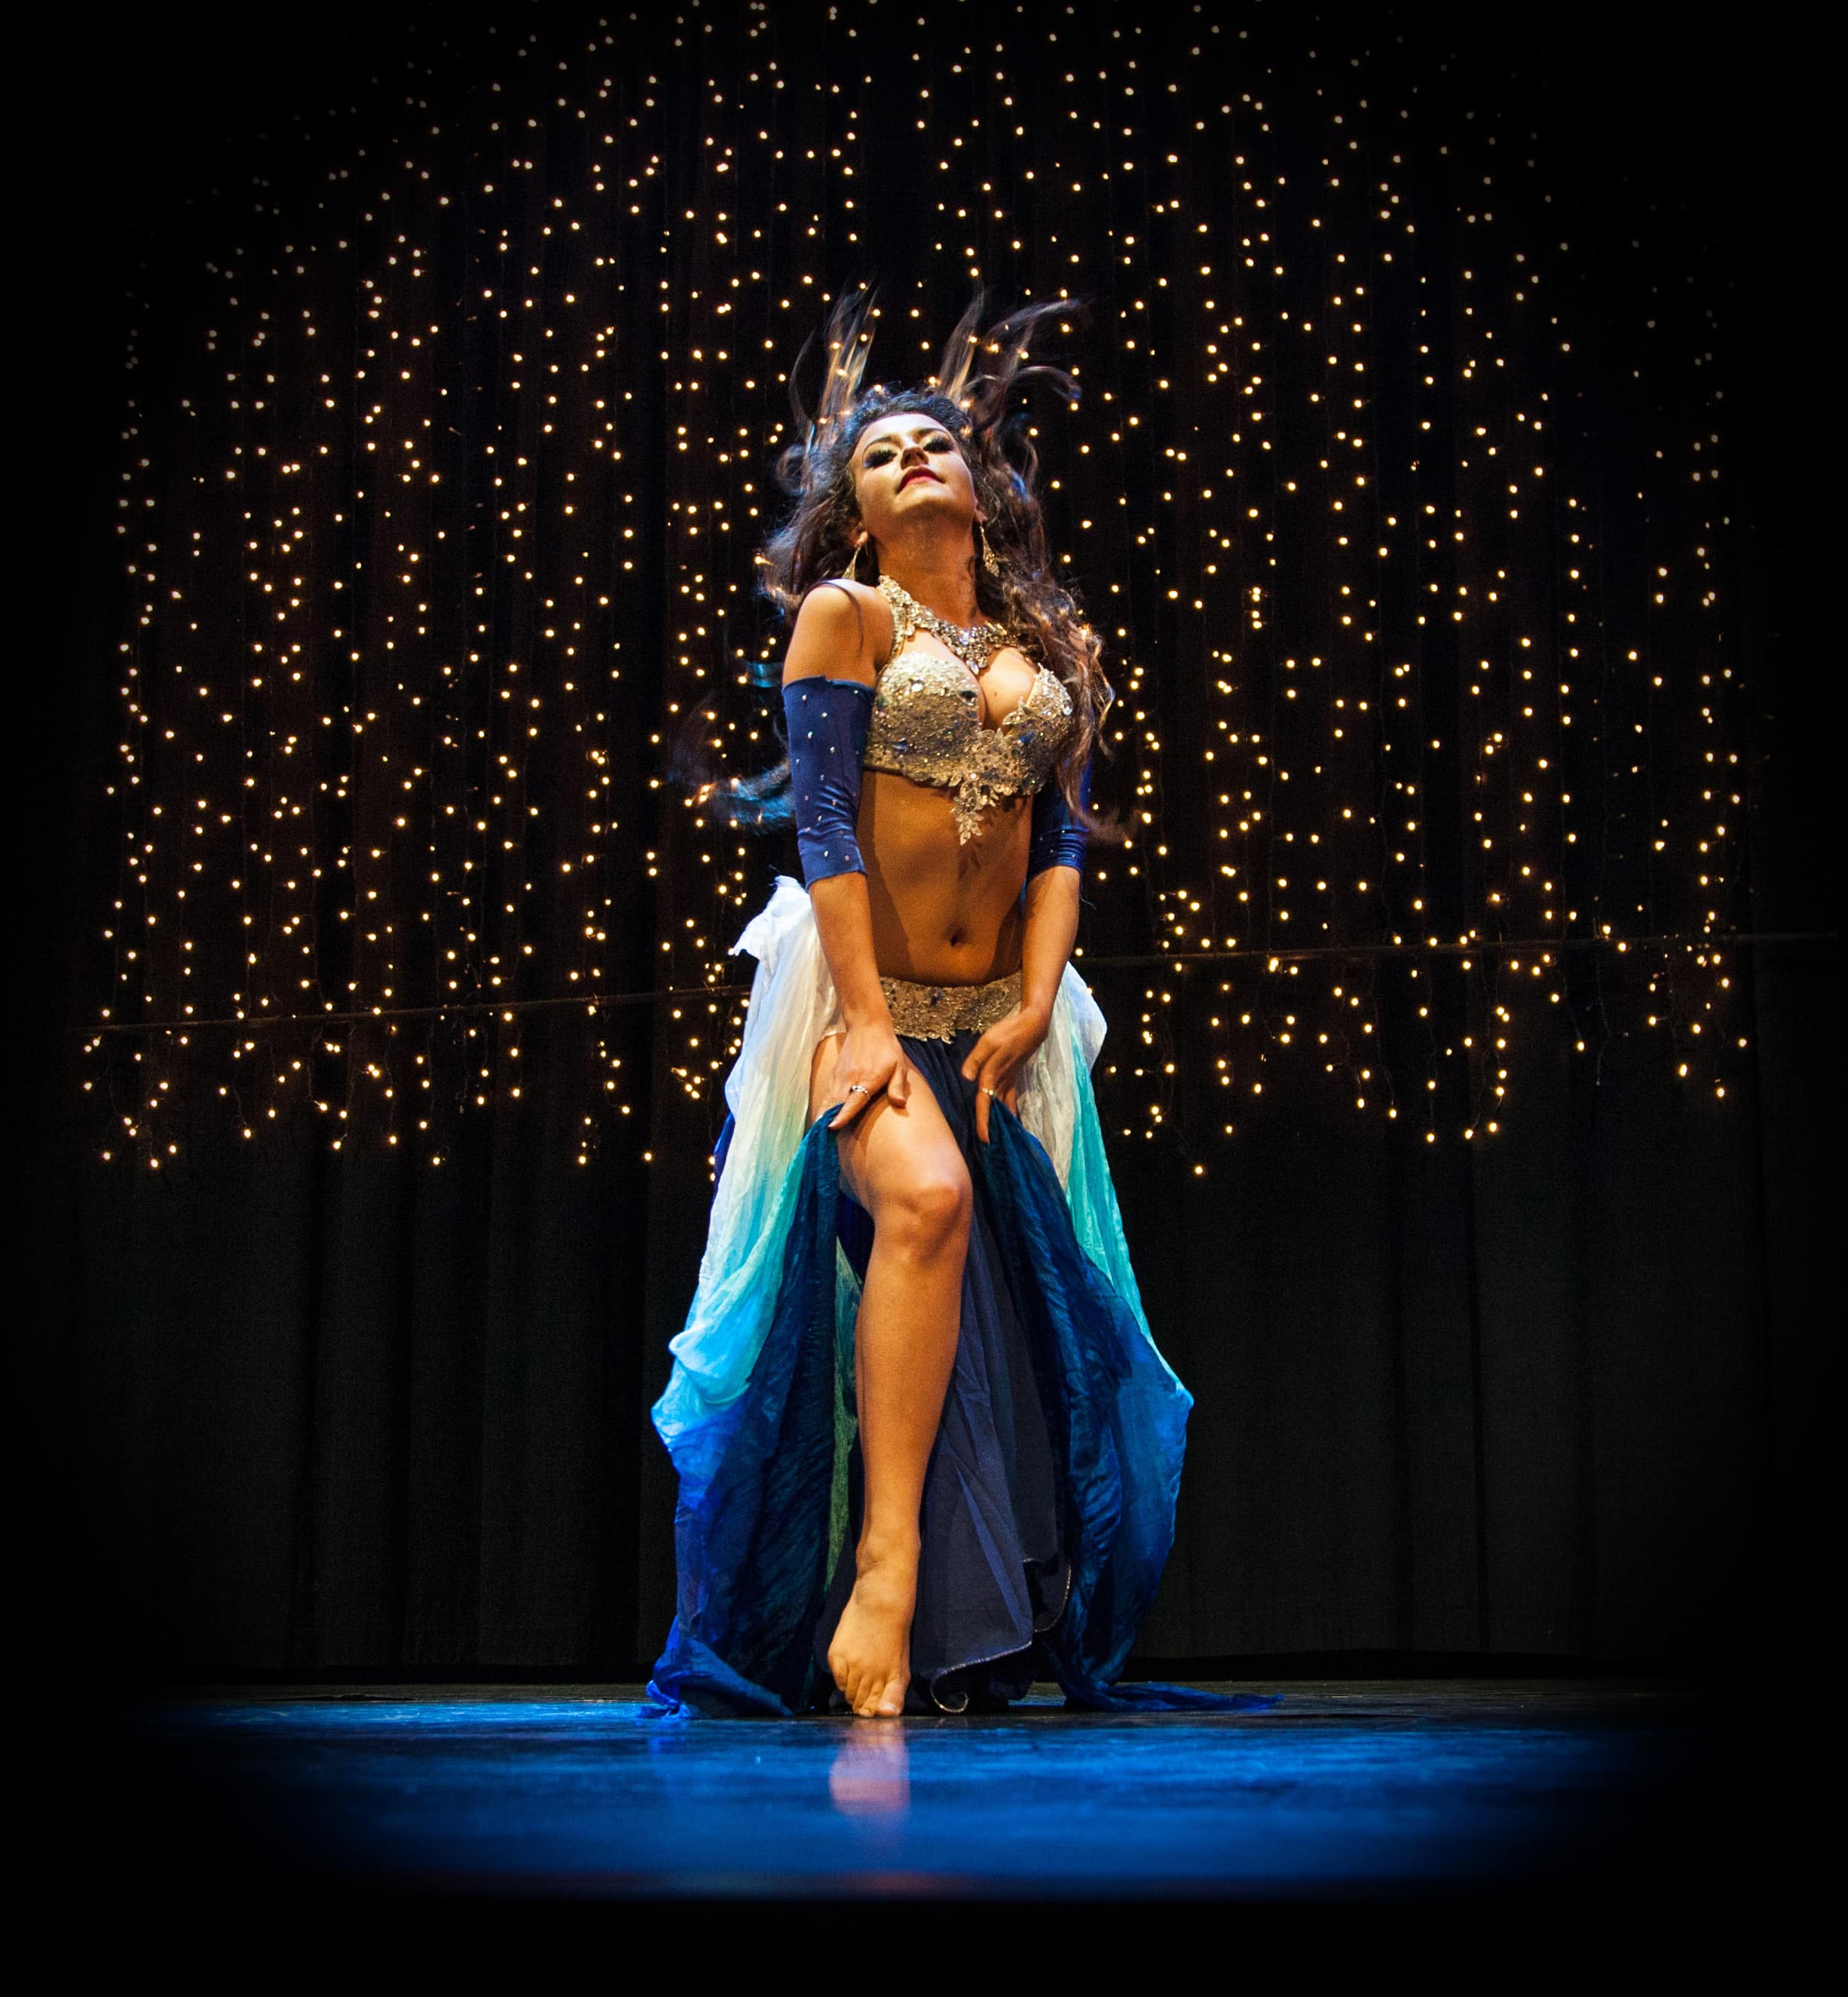 Katie belly dancer is available to hire at events and shows throughout London and the UK